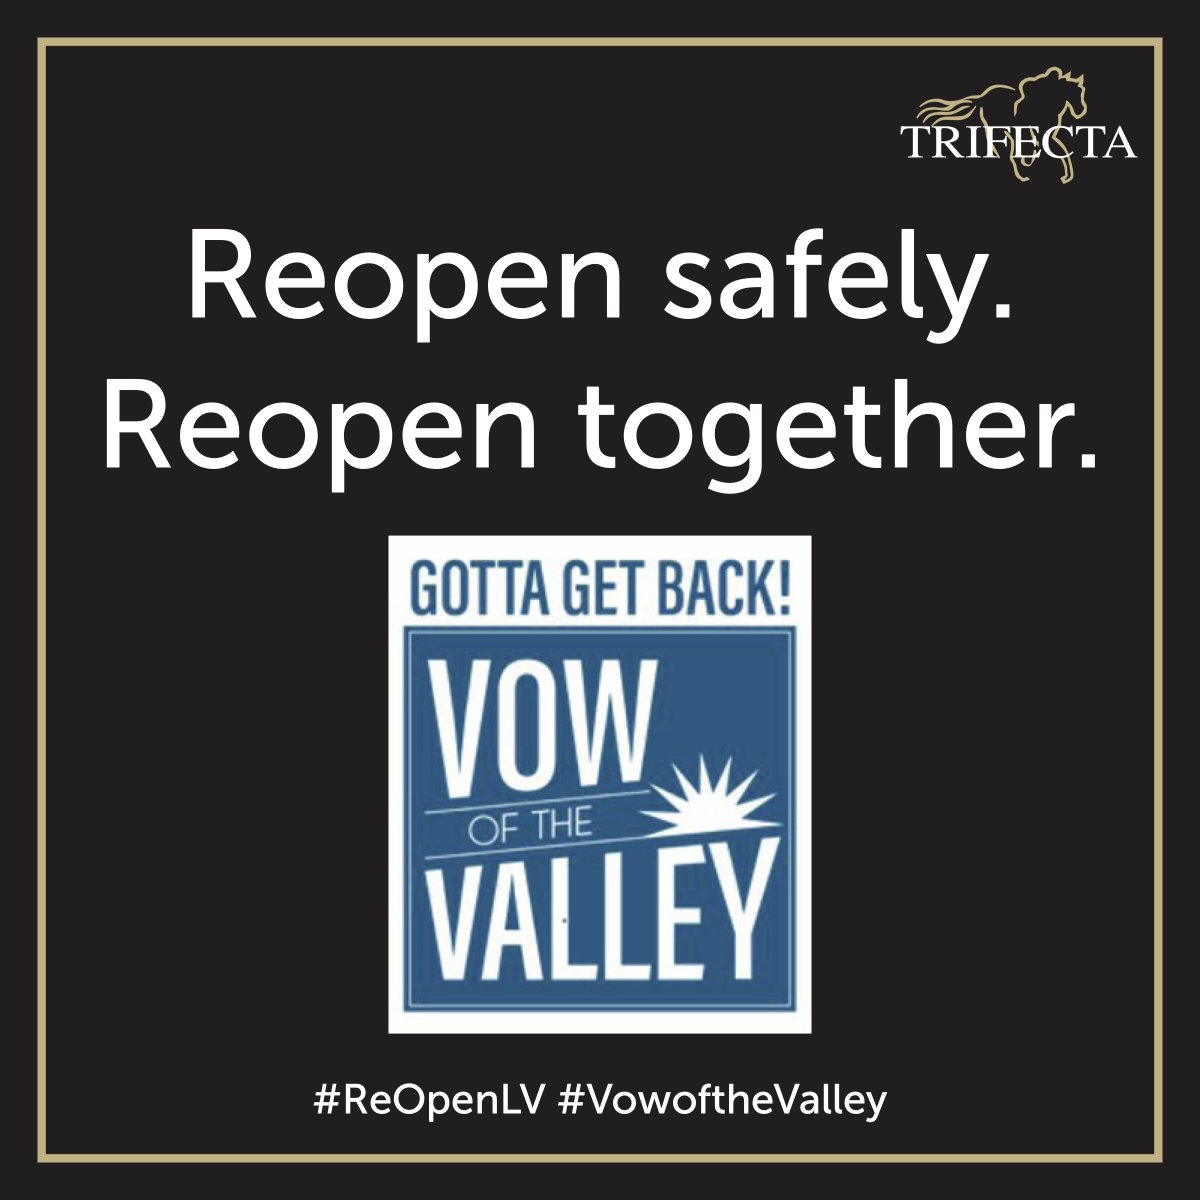 The #LehighValley is slowly reopening & Trifecta is committed to doing it safely for our employees, clients, & community. Learn about @GLVCC's #VowoftheValley here: https://t.co/sAfNRtXN2i #ReOpenLV https://t.co/ctqq0Pe5XI